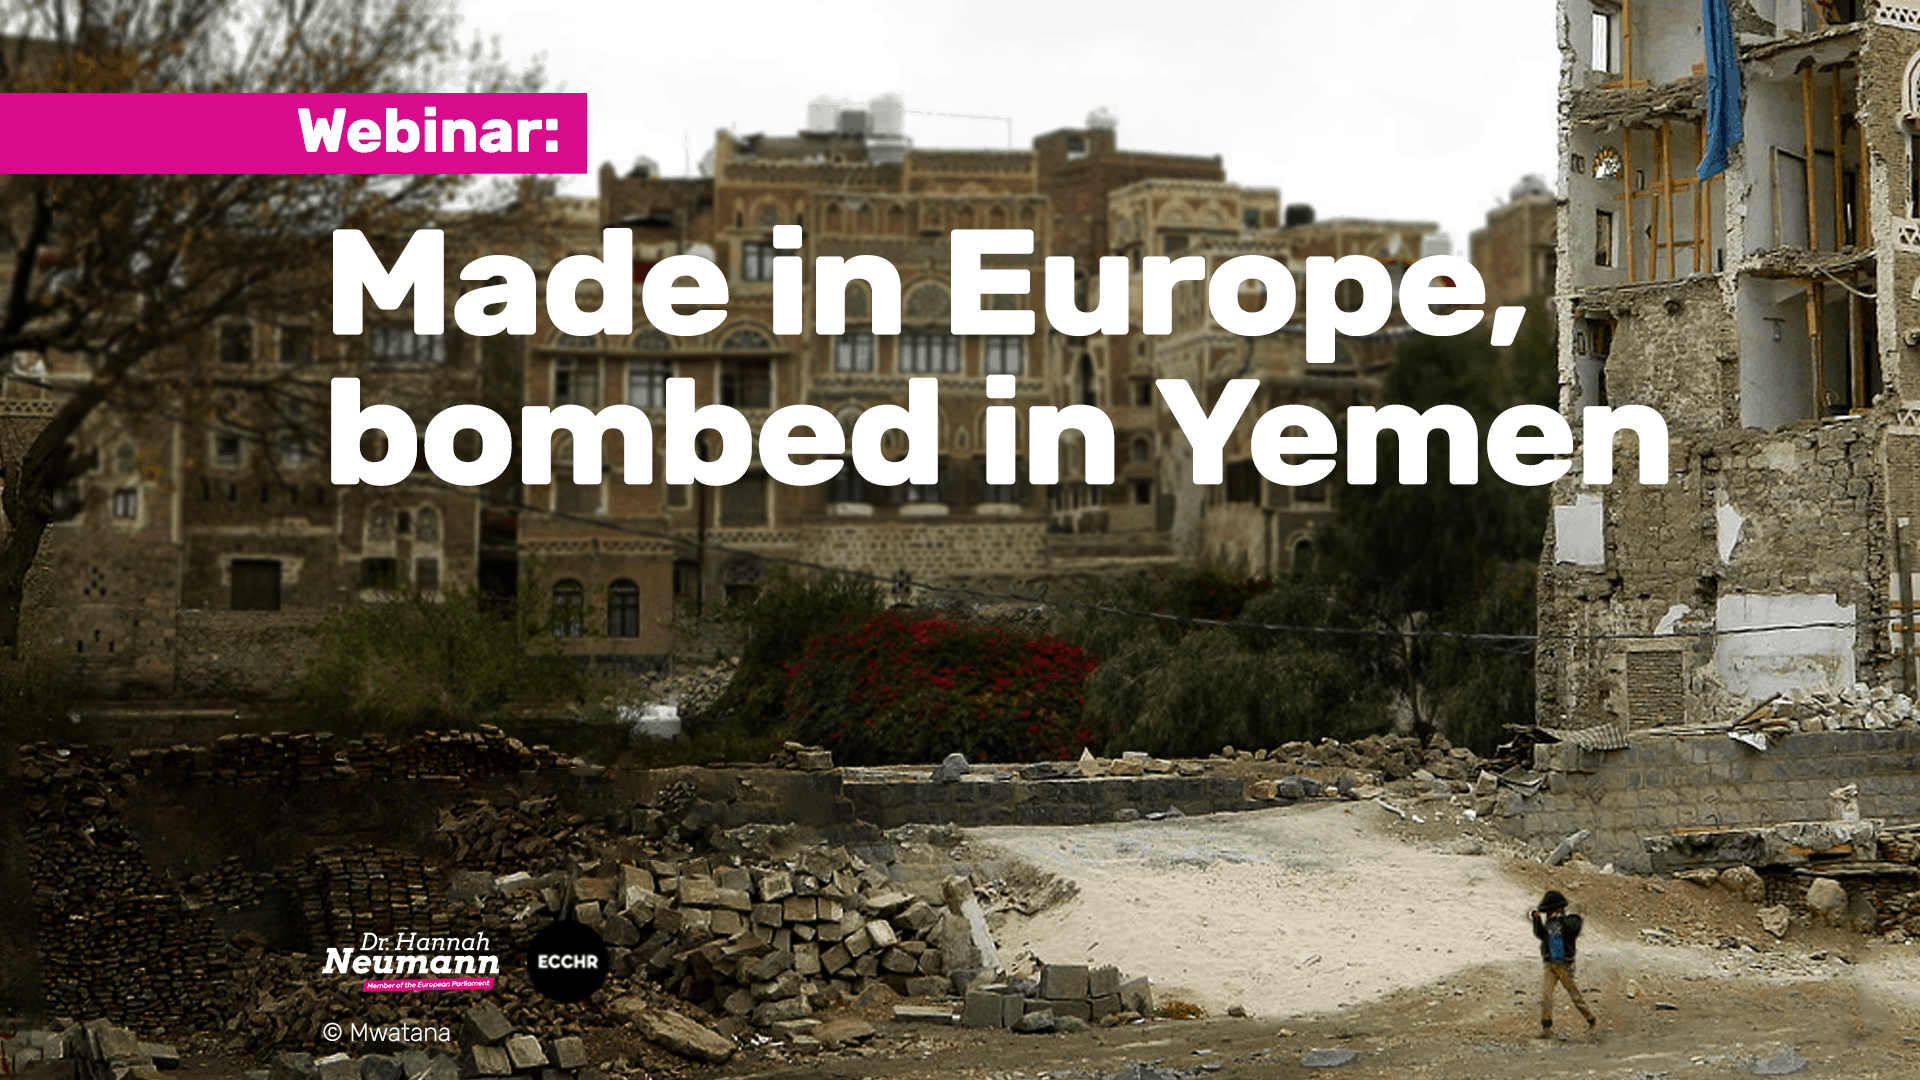 Made in Europe, bombed in Yemen - Mein Webinar